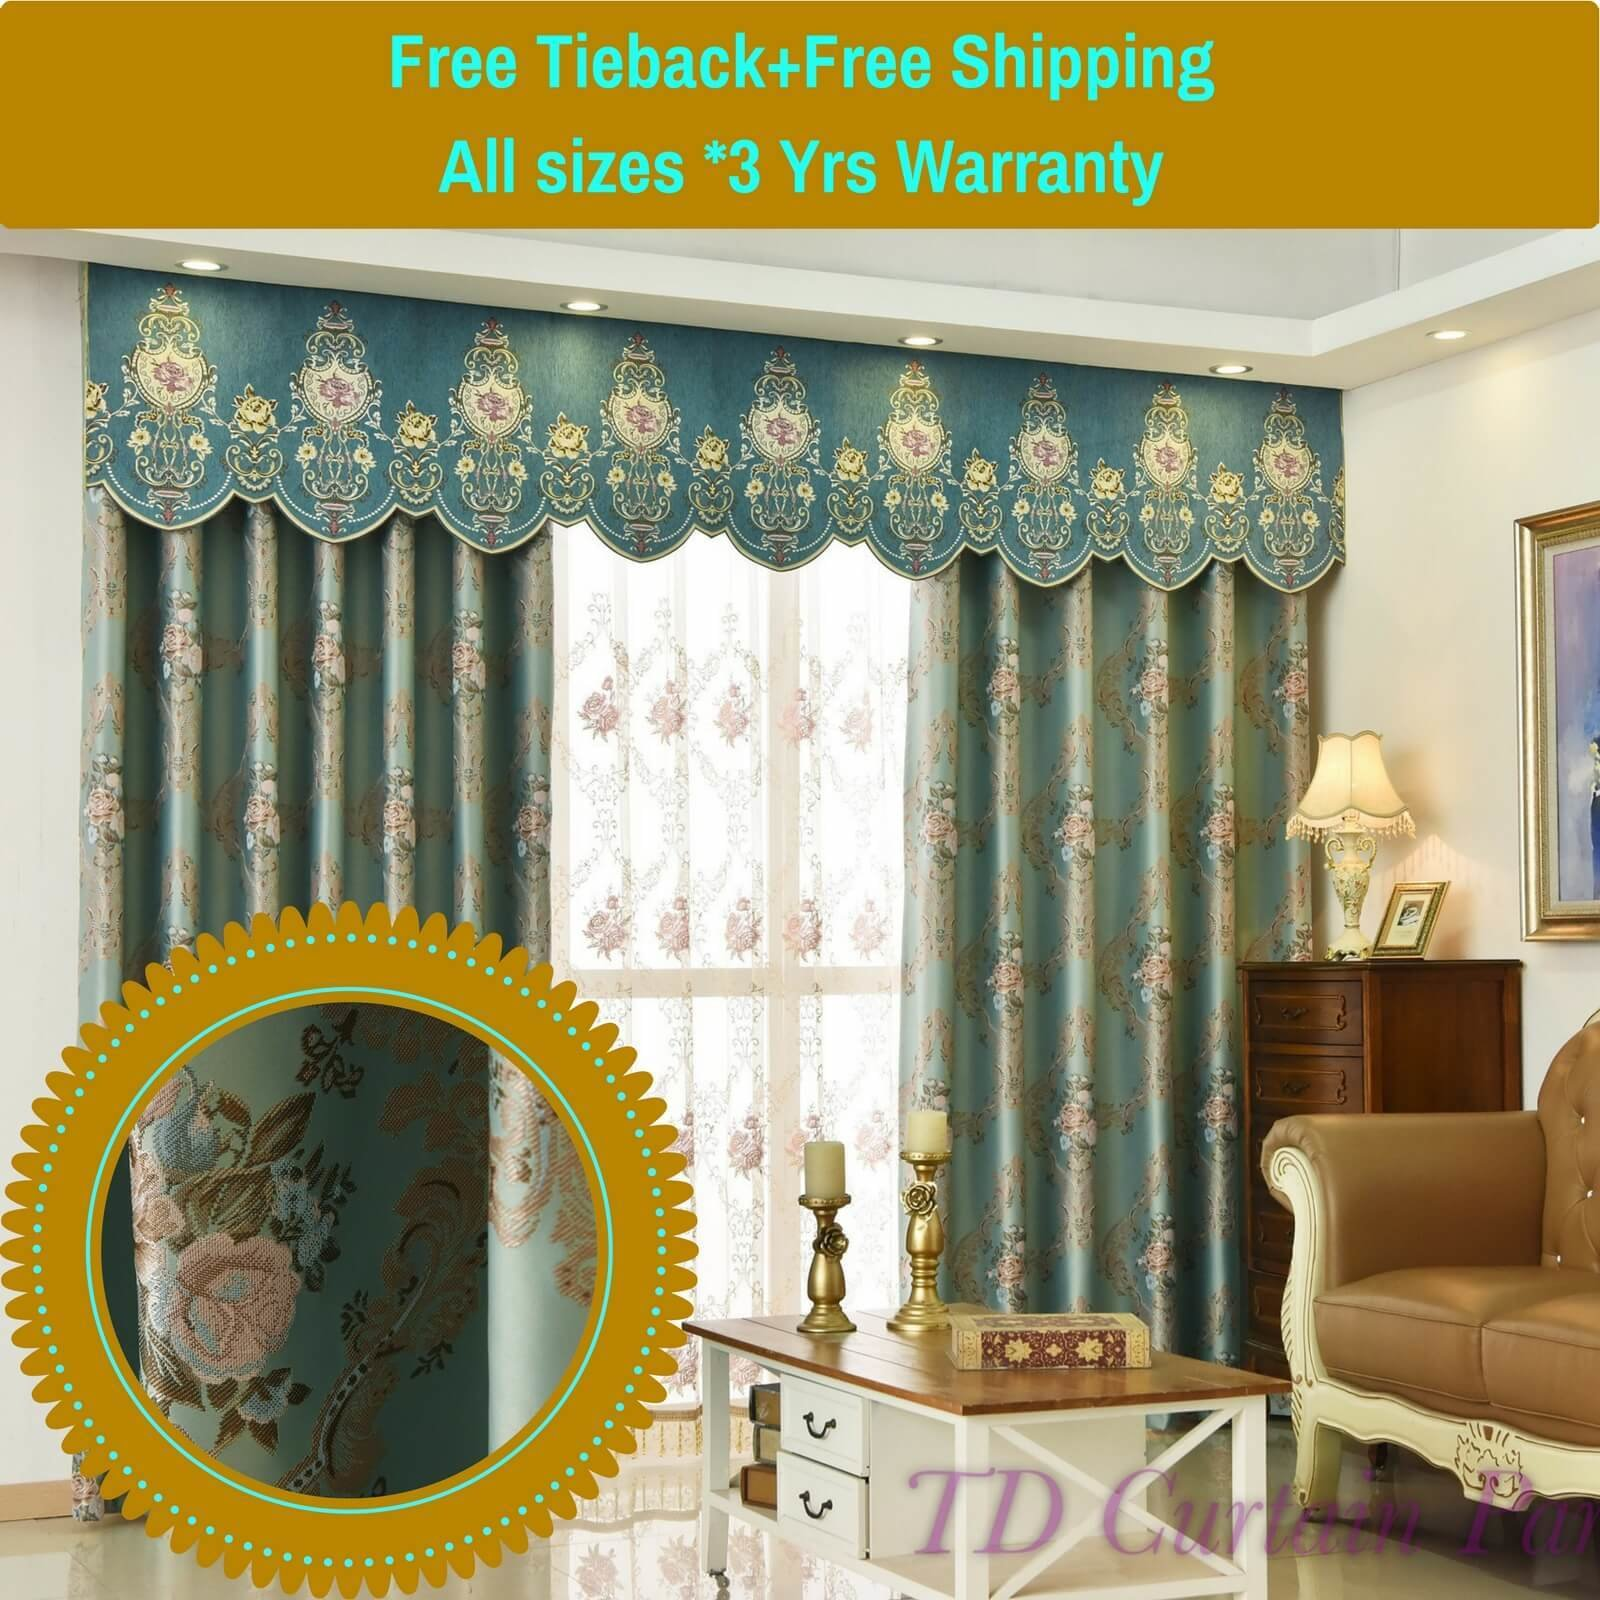 Best Swag Valance Pelmet Blockout Drapes Blue Bedroom Net With Pictures